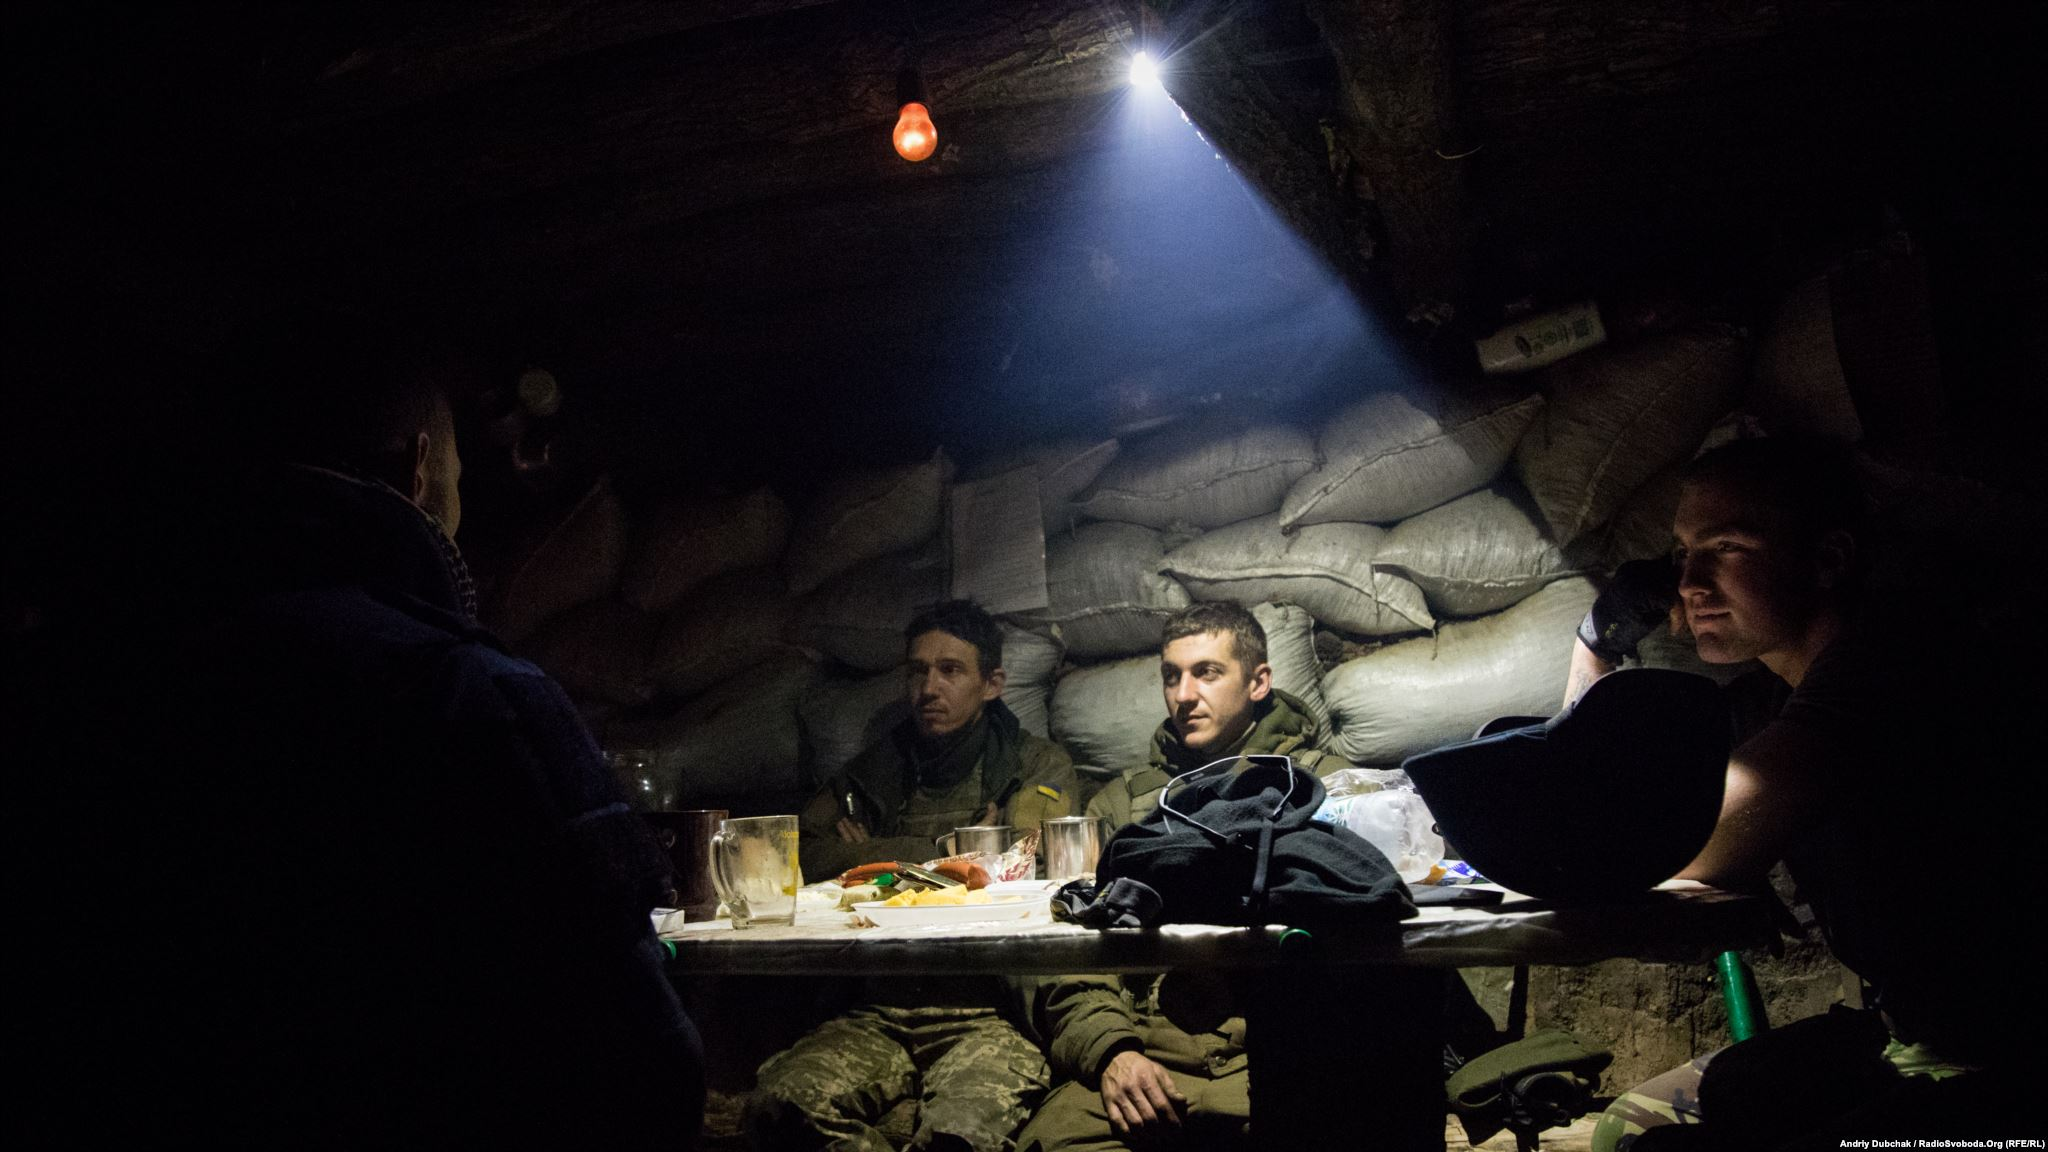 Supper during engagement, near Popasna. Some Ukrainian military eat dinner, while others suppress enemy fire (photo by ukrainian military photographer Andriy Dubchak)